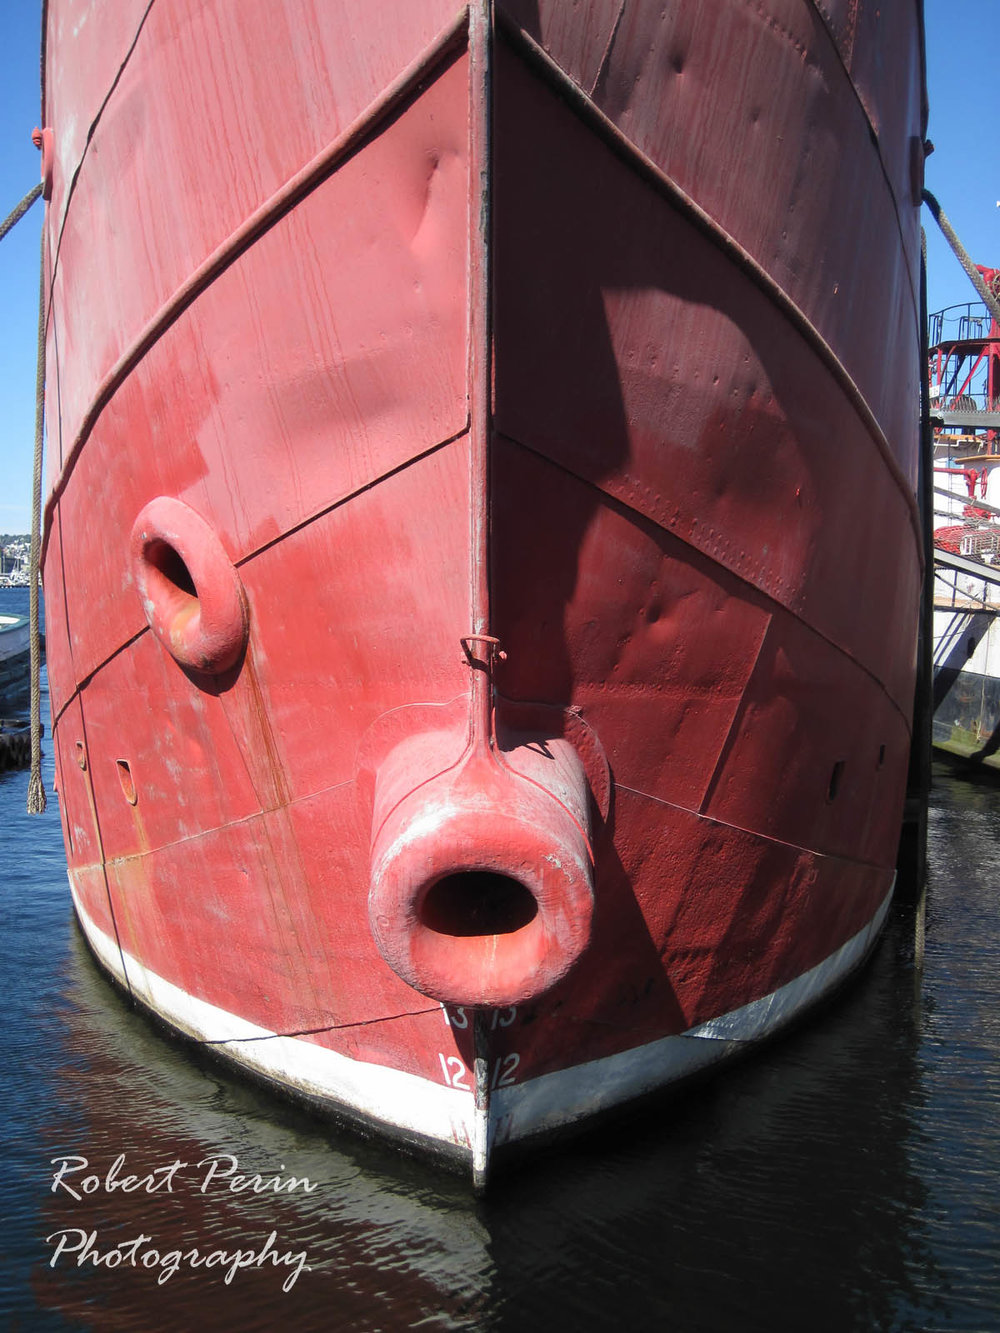 THE BOW OF THE LIGHTSHIP